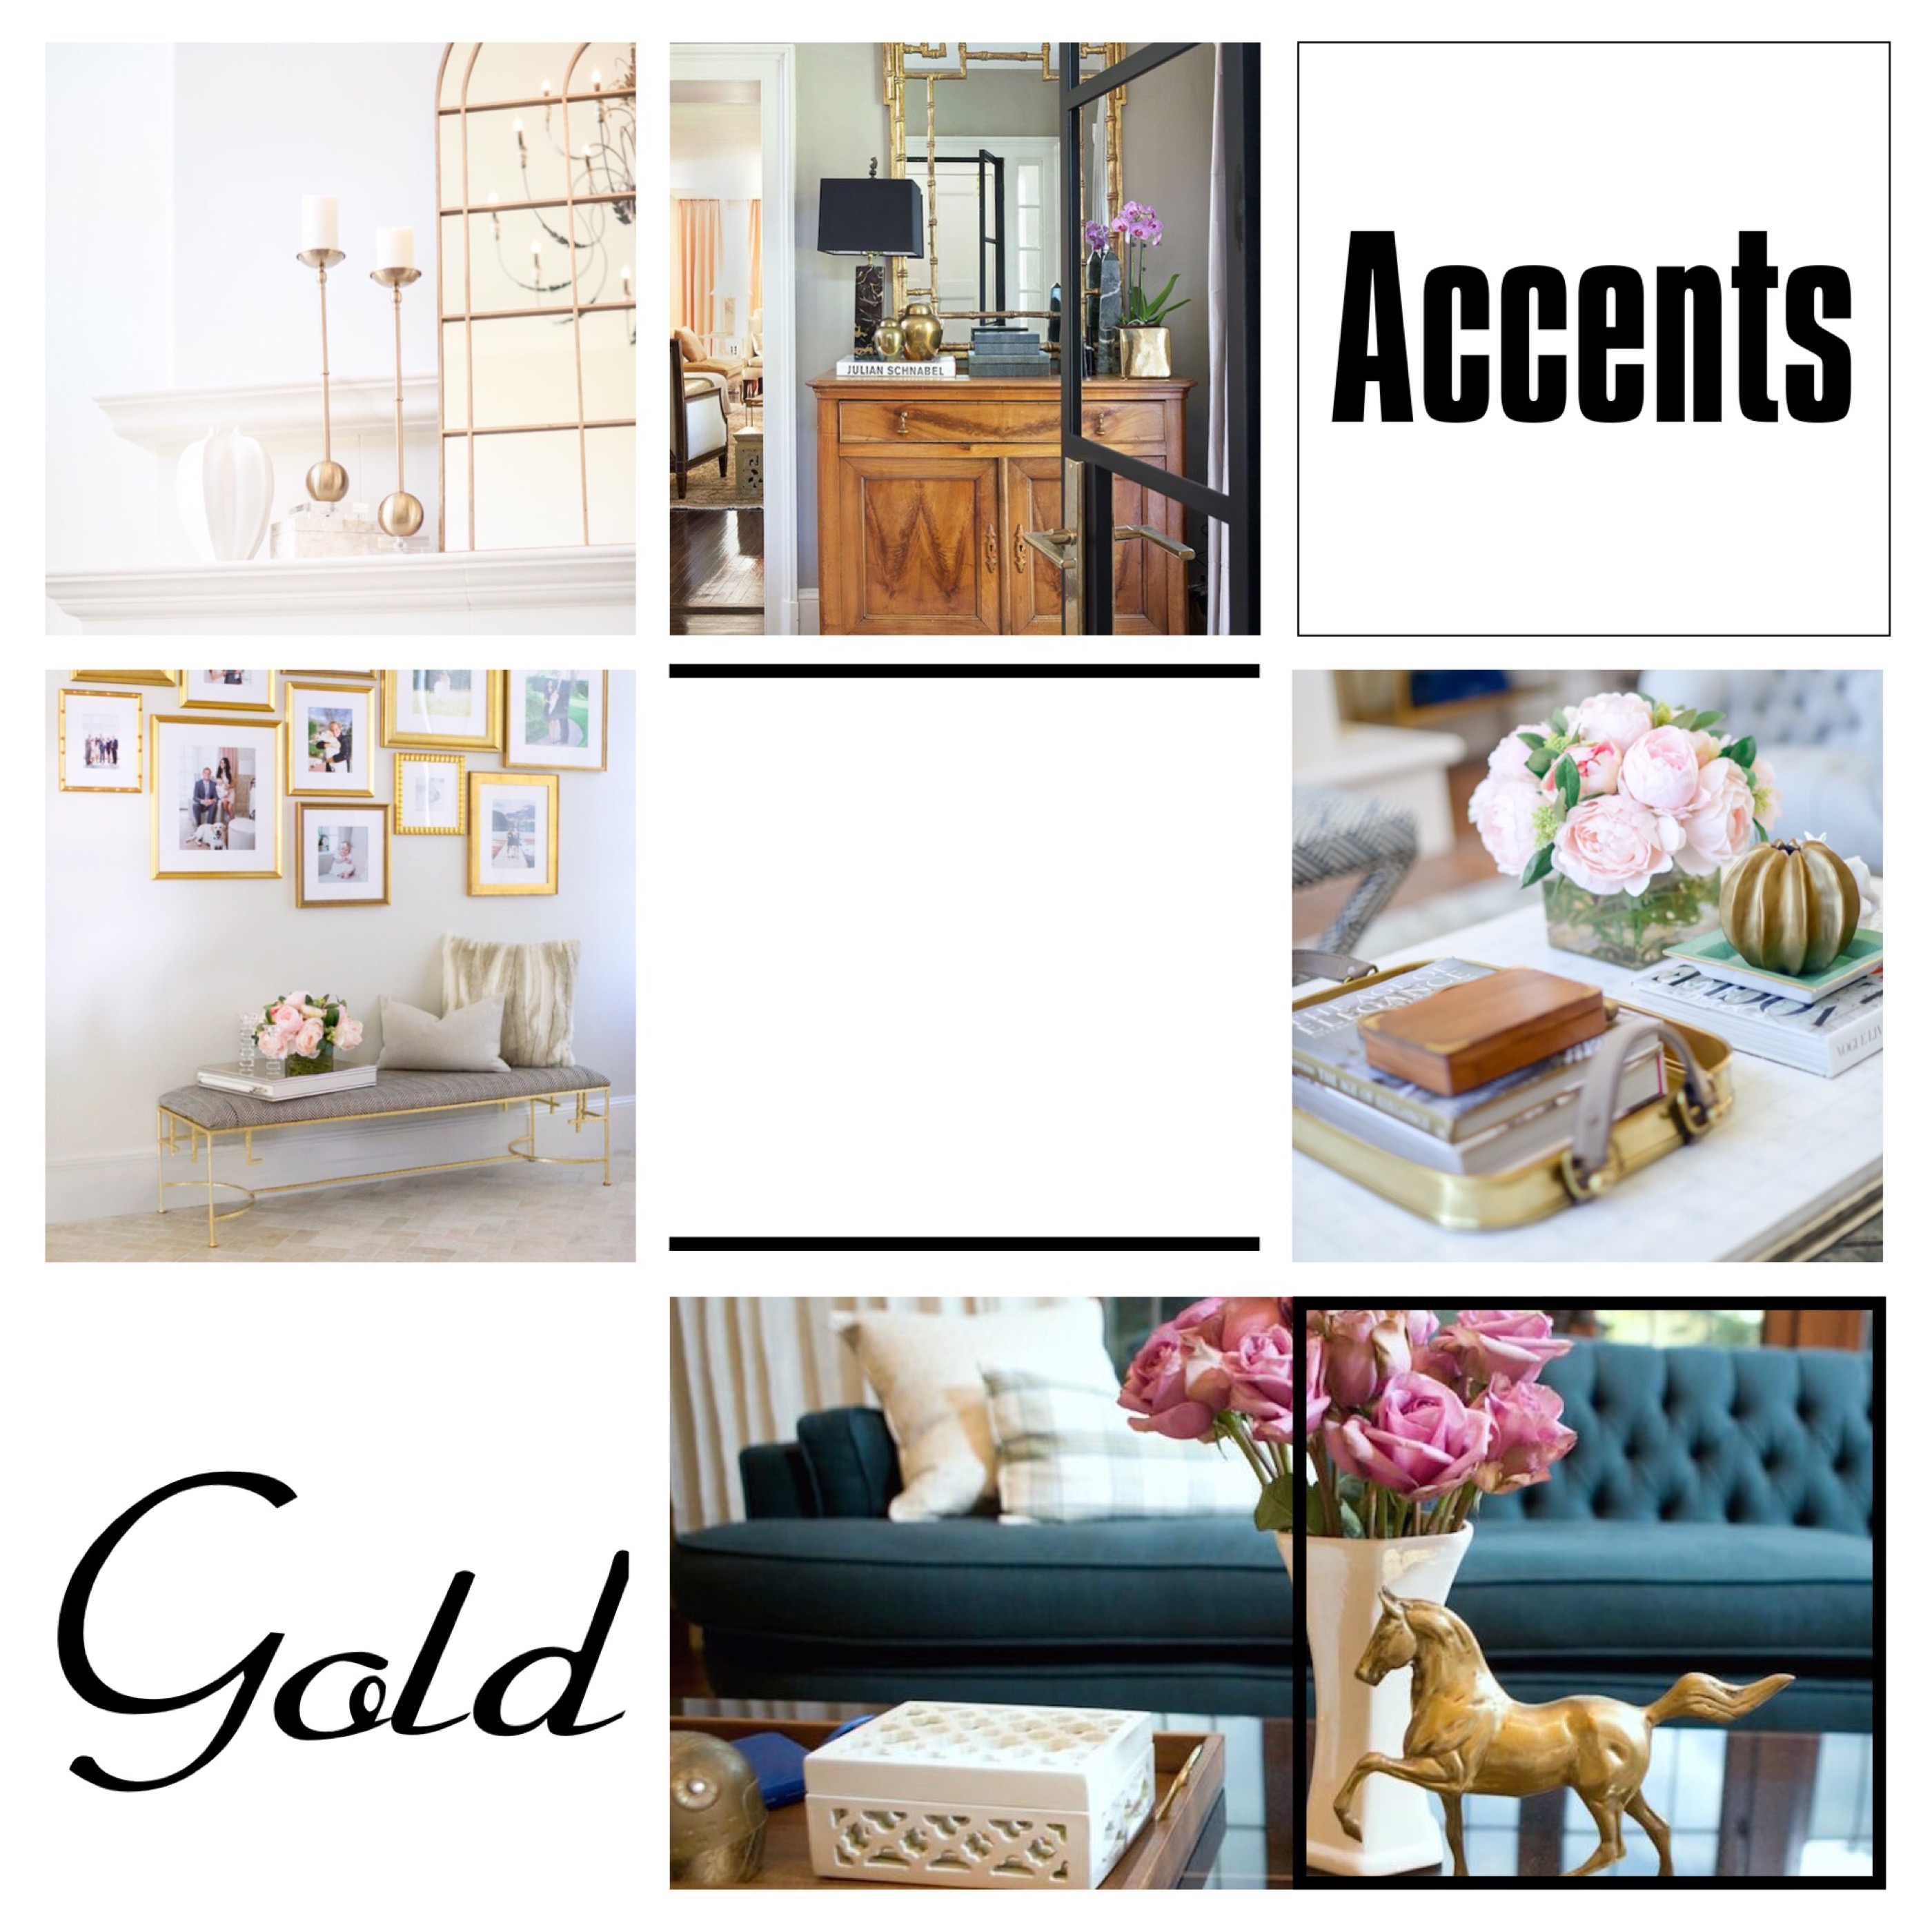 Deco inspo - Gold accents